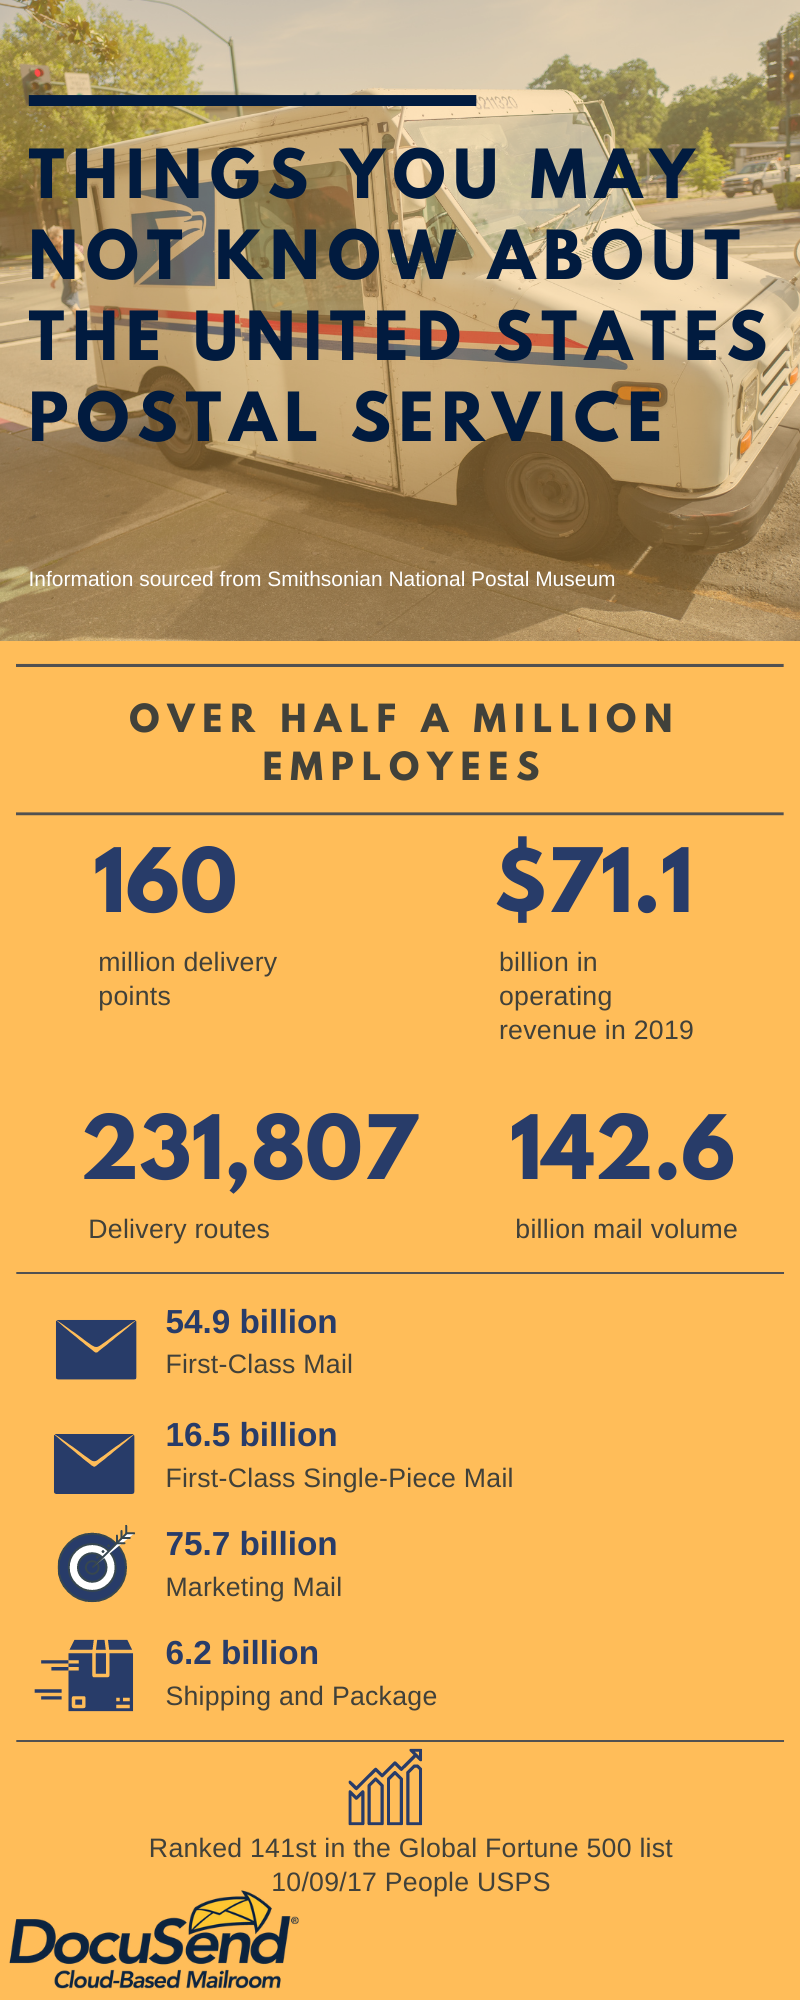 things you may not know about the postal service